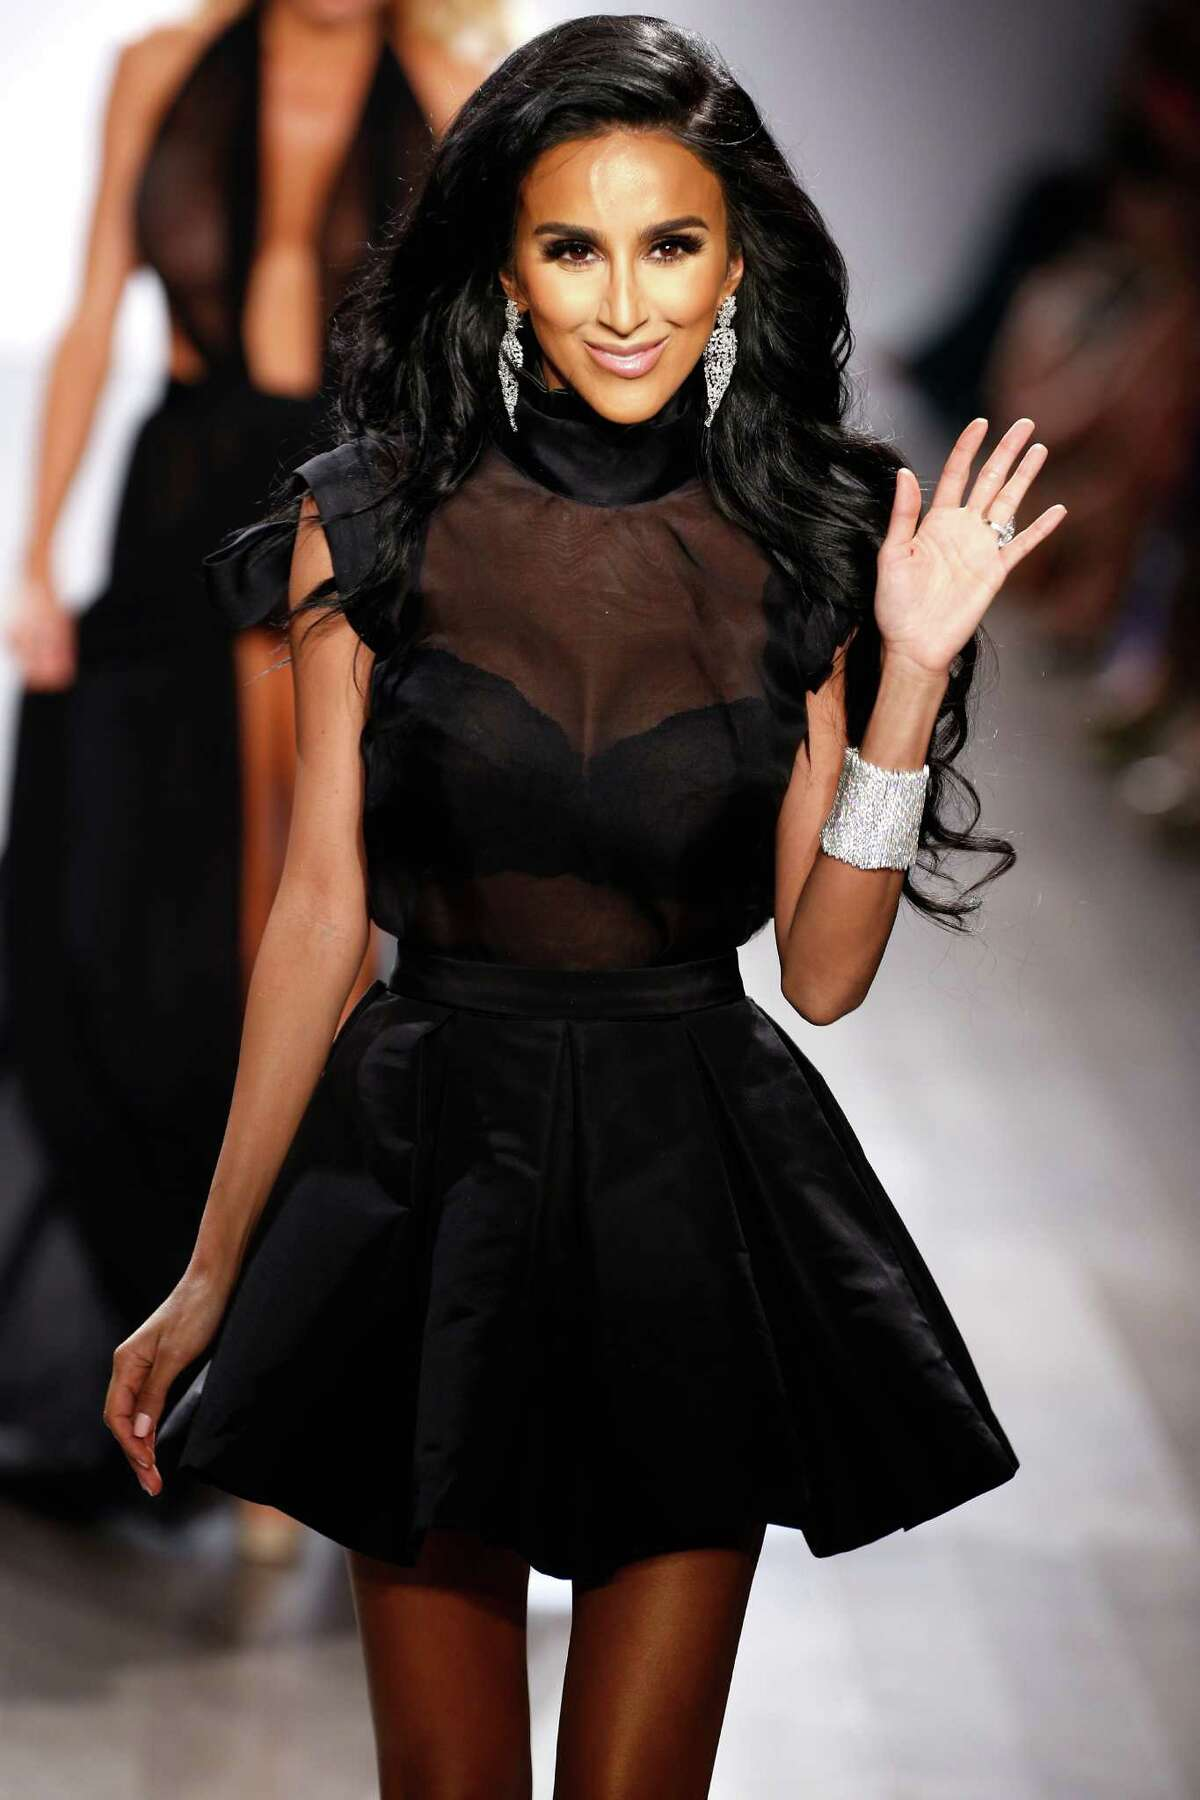 Lilly Ghalichi Dubbed the